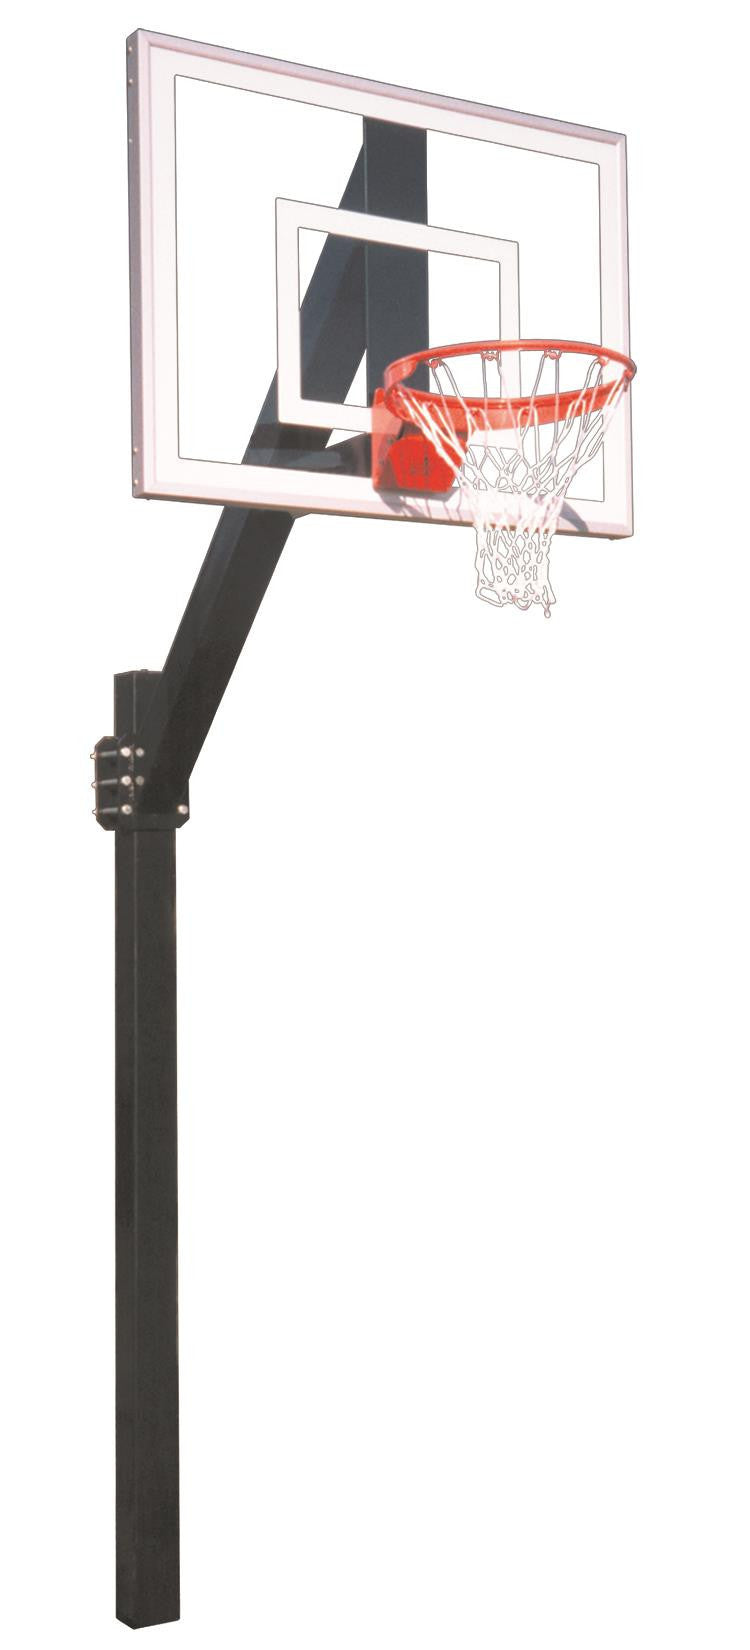 First Team Legend Jr Ultra In Ground Fixed Height Outdoor Basketball Hoop 54 inch Tempered Glass